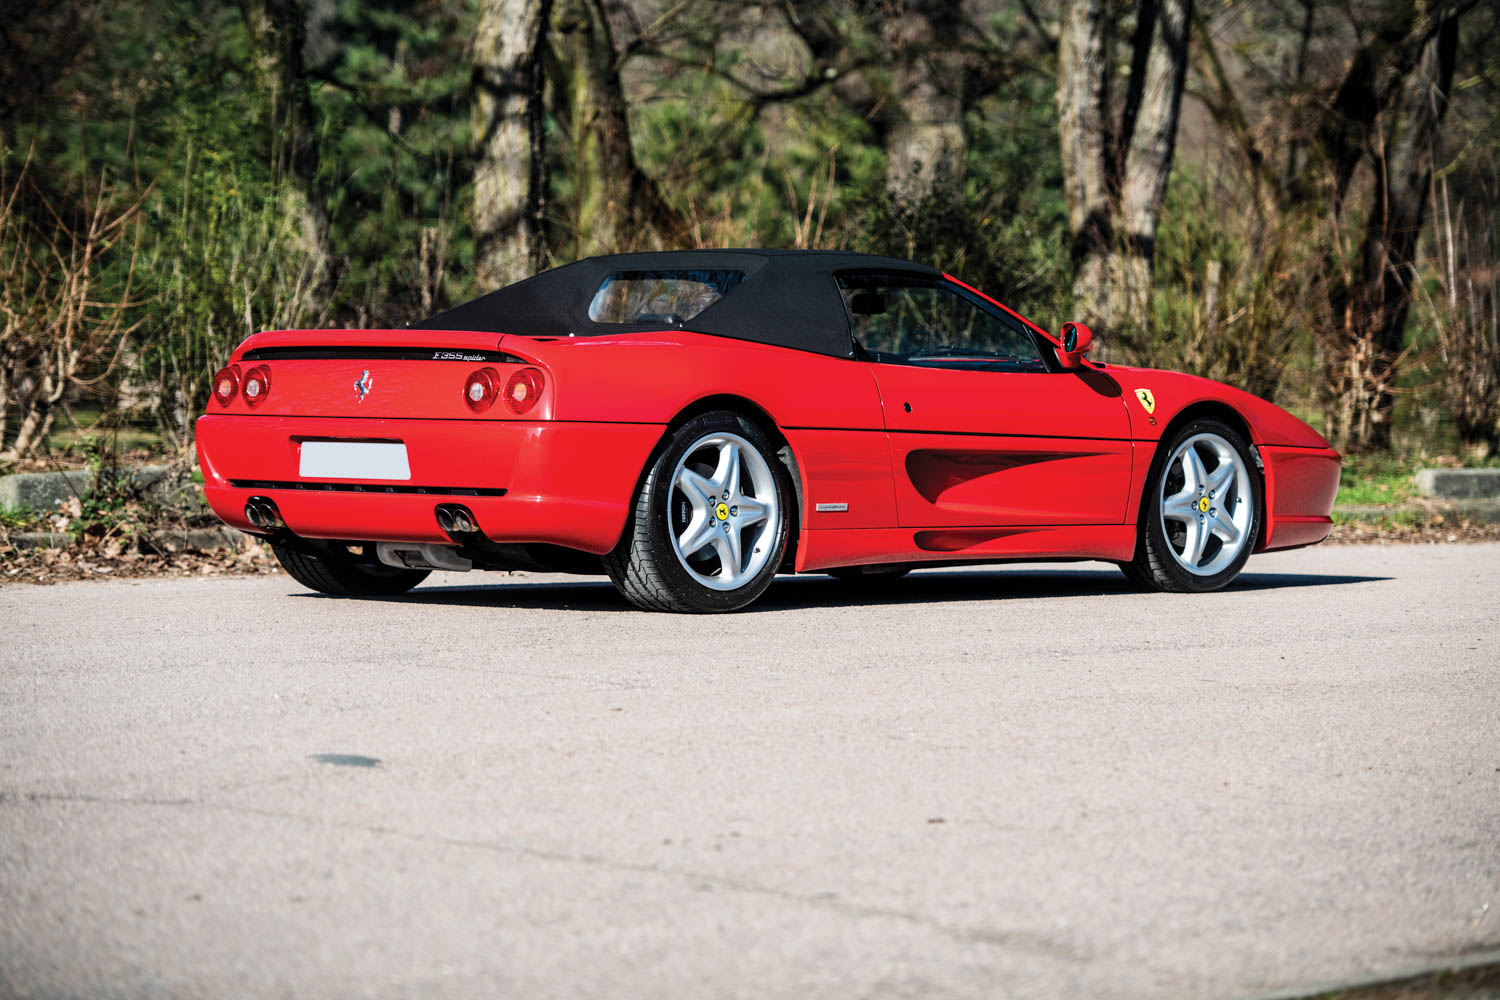 1997 Ferrari F355 Spider rear 3/4